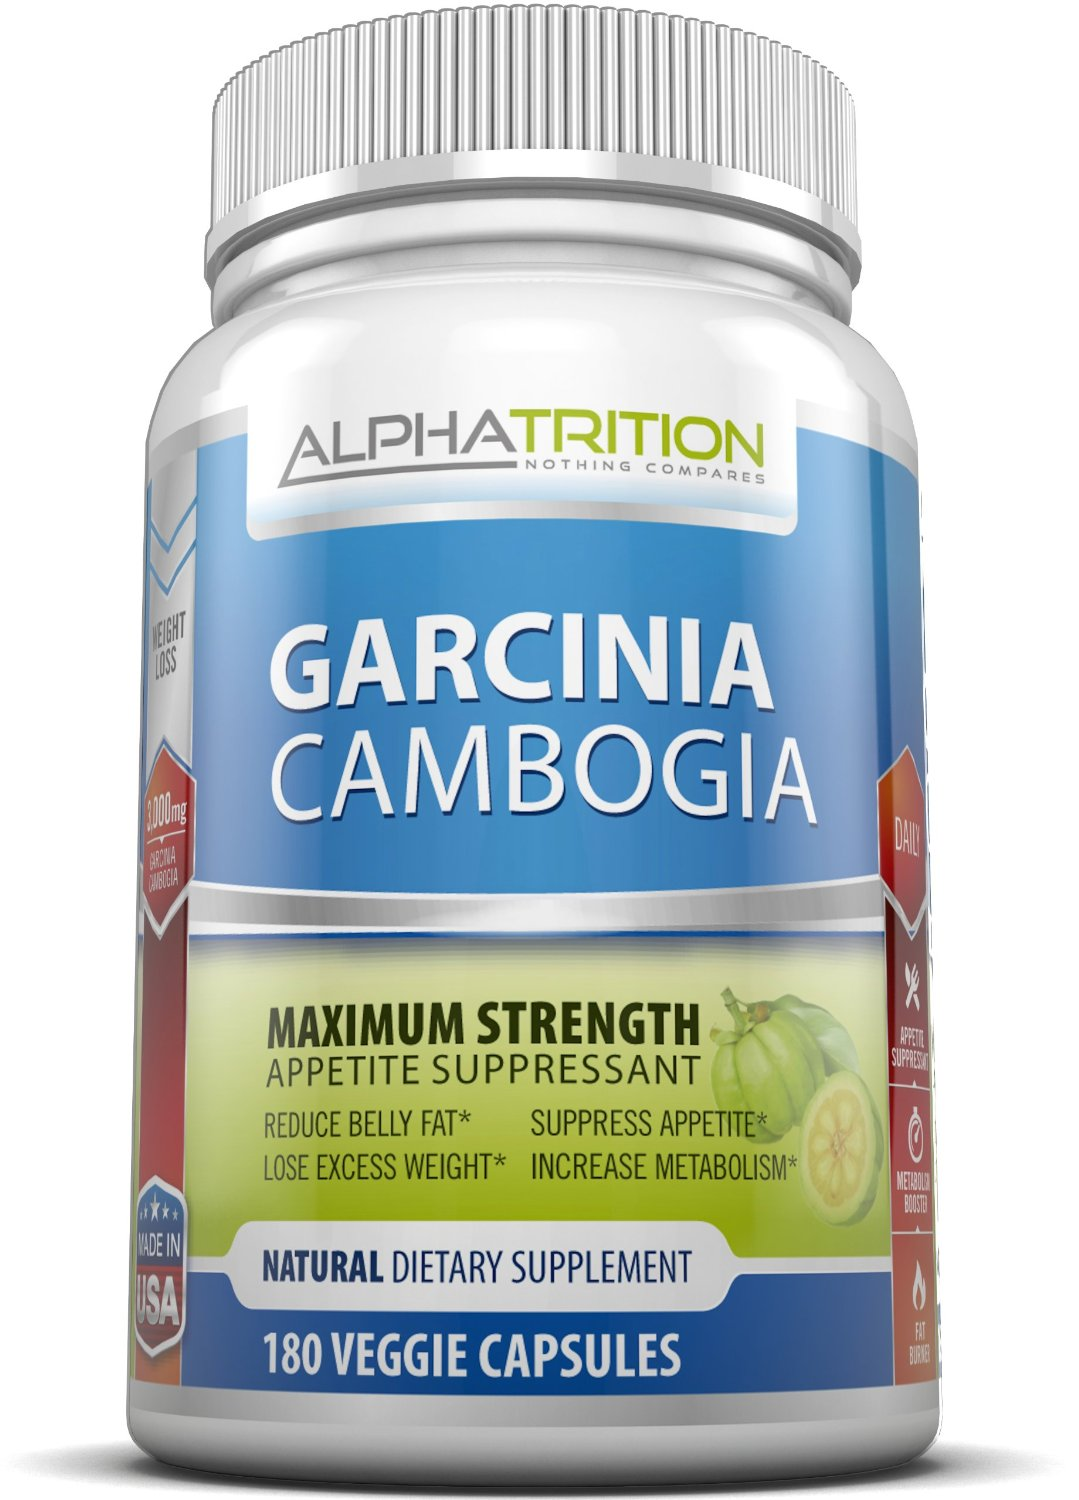 Garcinia-Cambogia-Extract-with-3000mg-Daily-Dosage-and-180-Veggie-Capsules.jpg